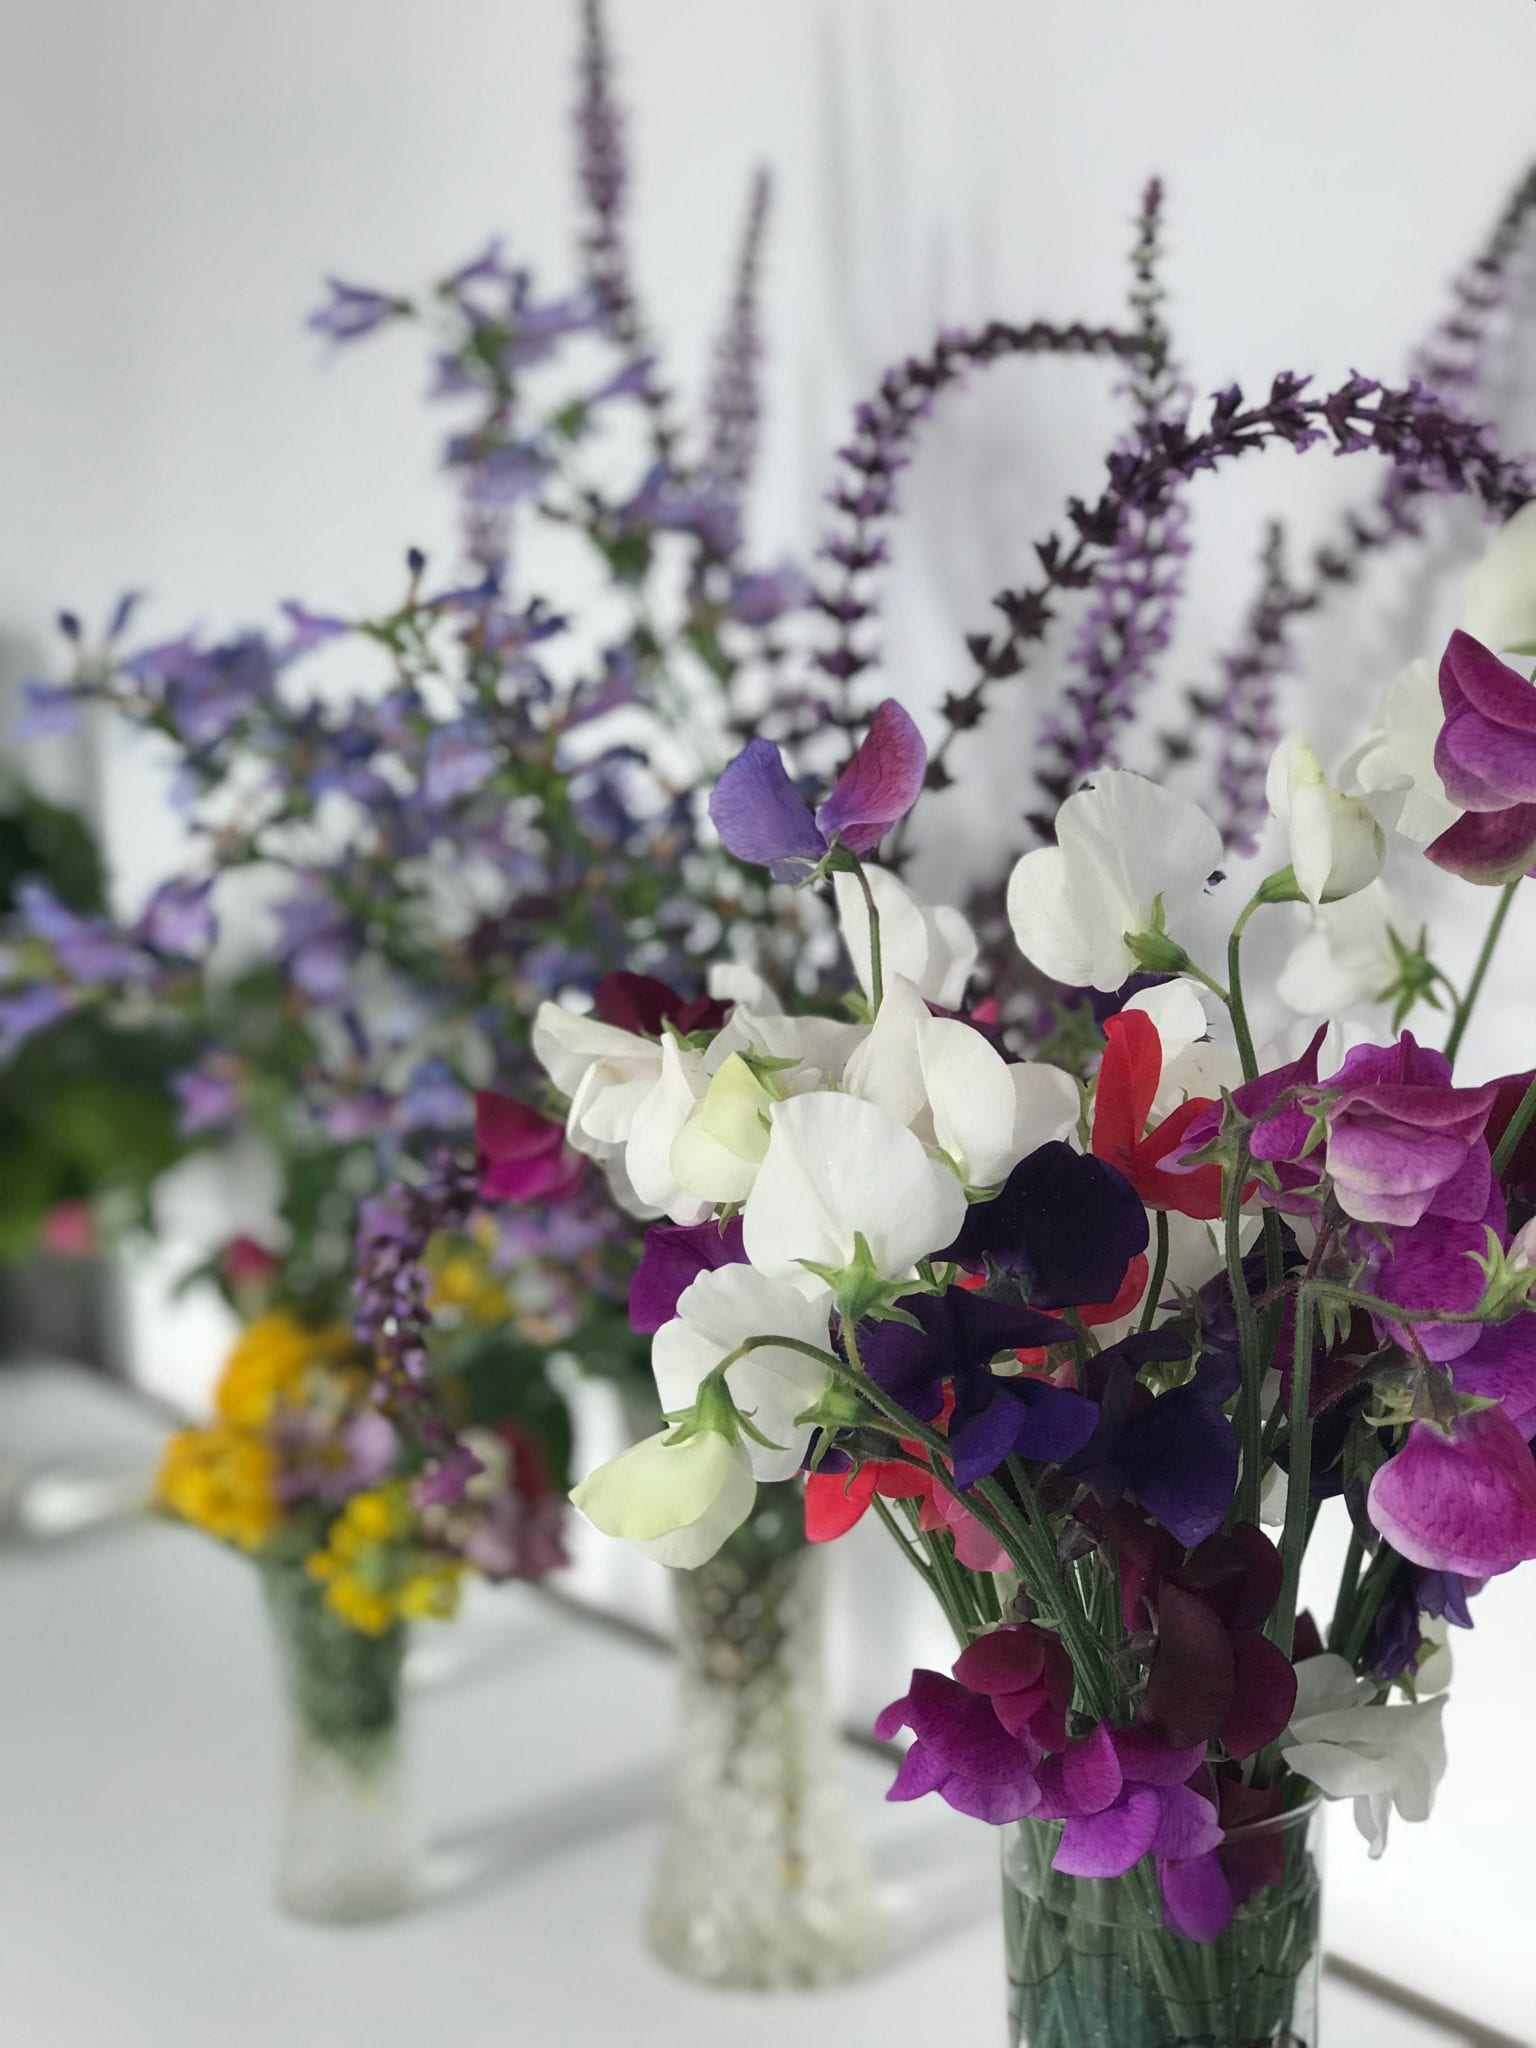 colourful sweet pea flowers in jars on ledge